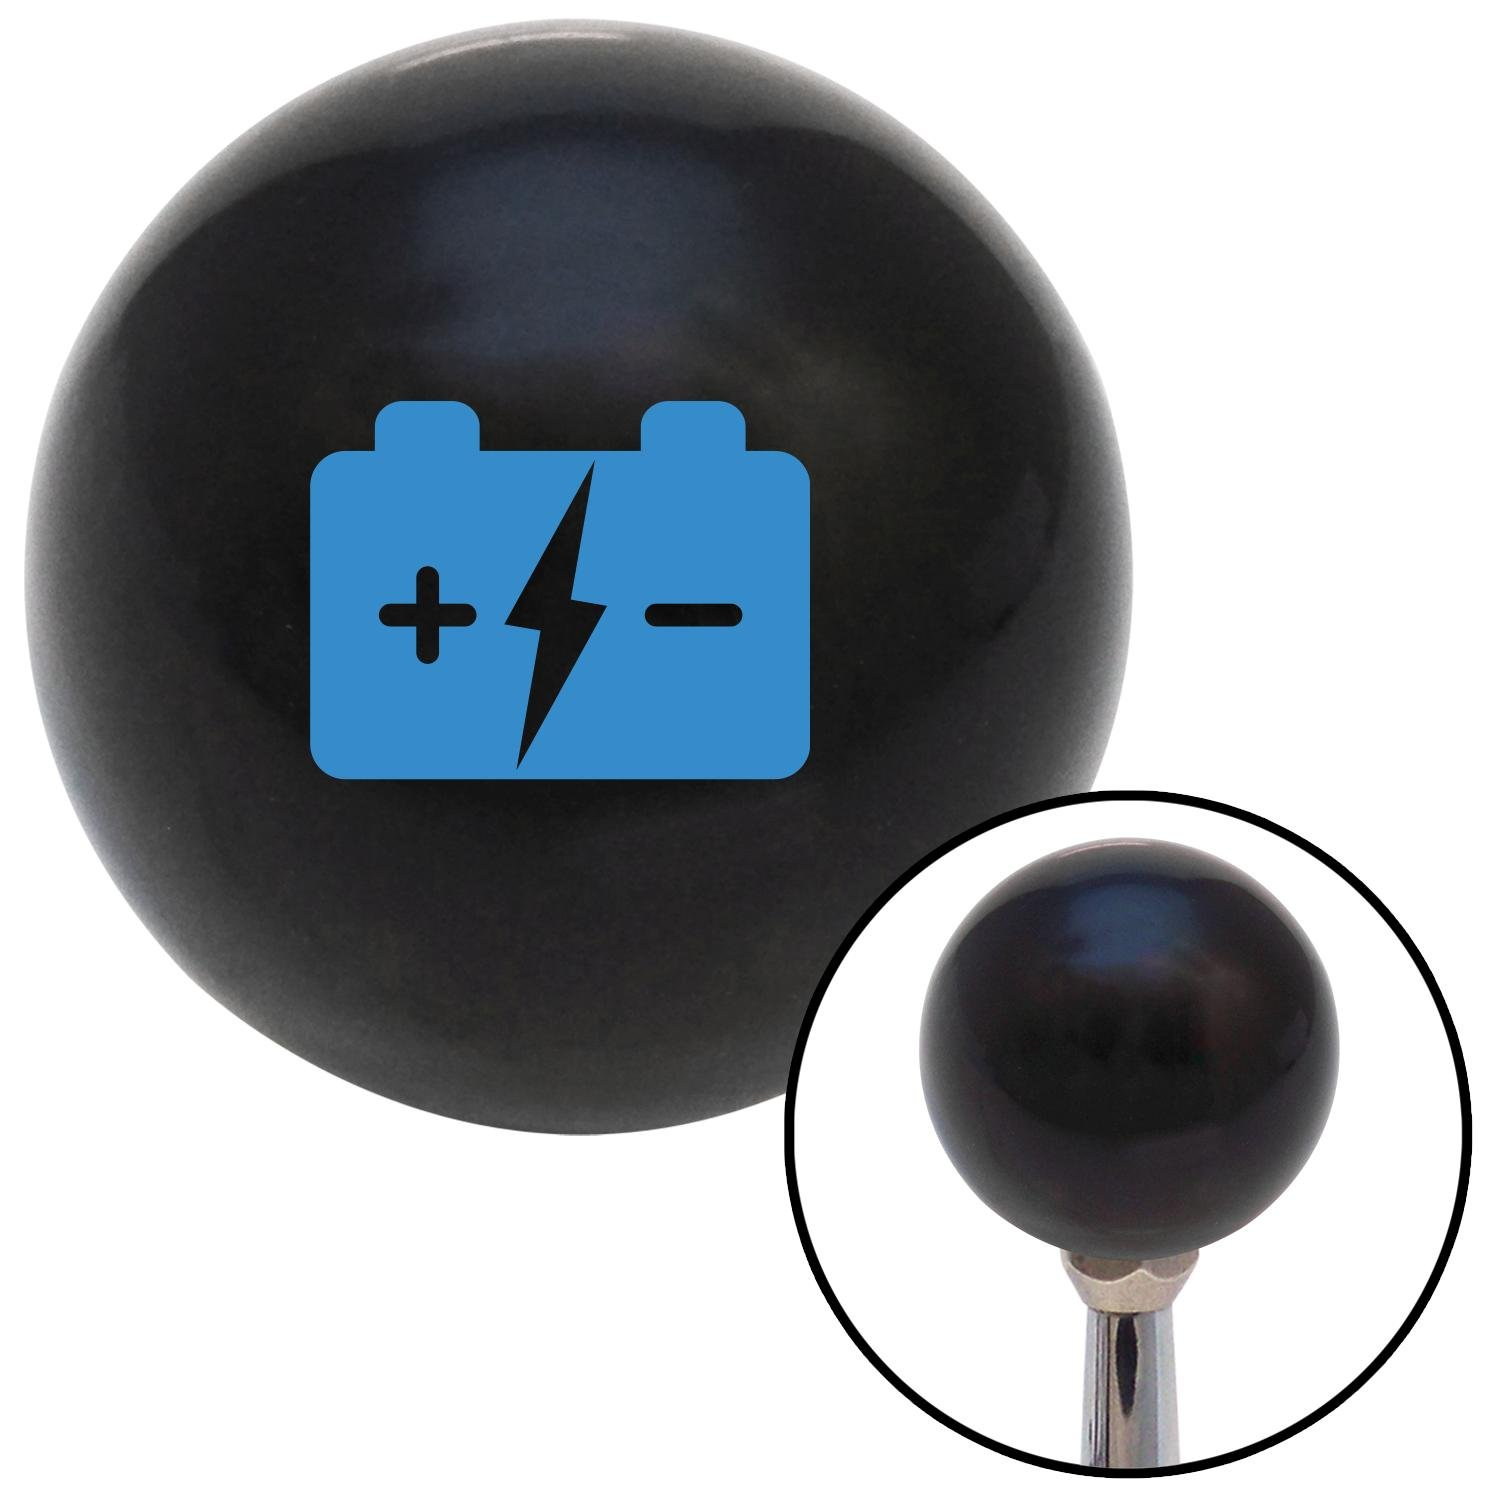 American Shifter 103696 Black Shift Knob with M16 x 1.5 Insert Blue Battery Charge Symbol